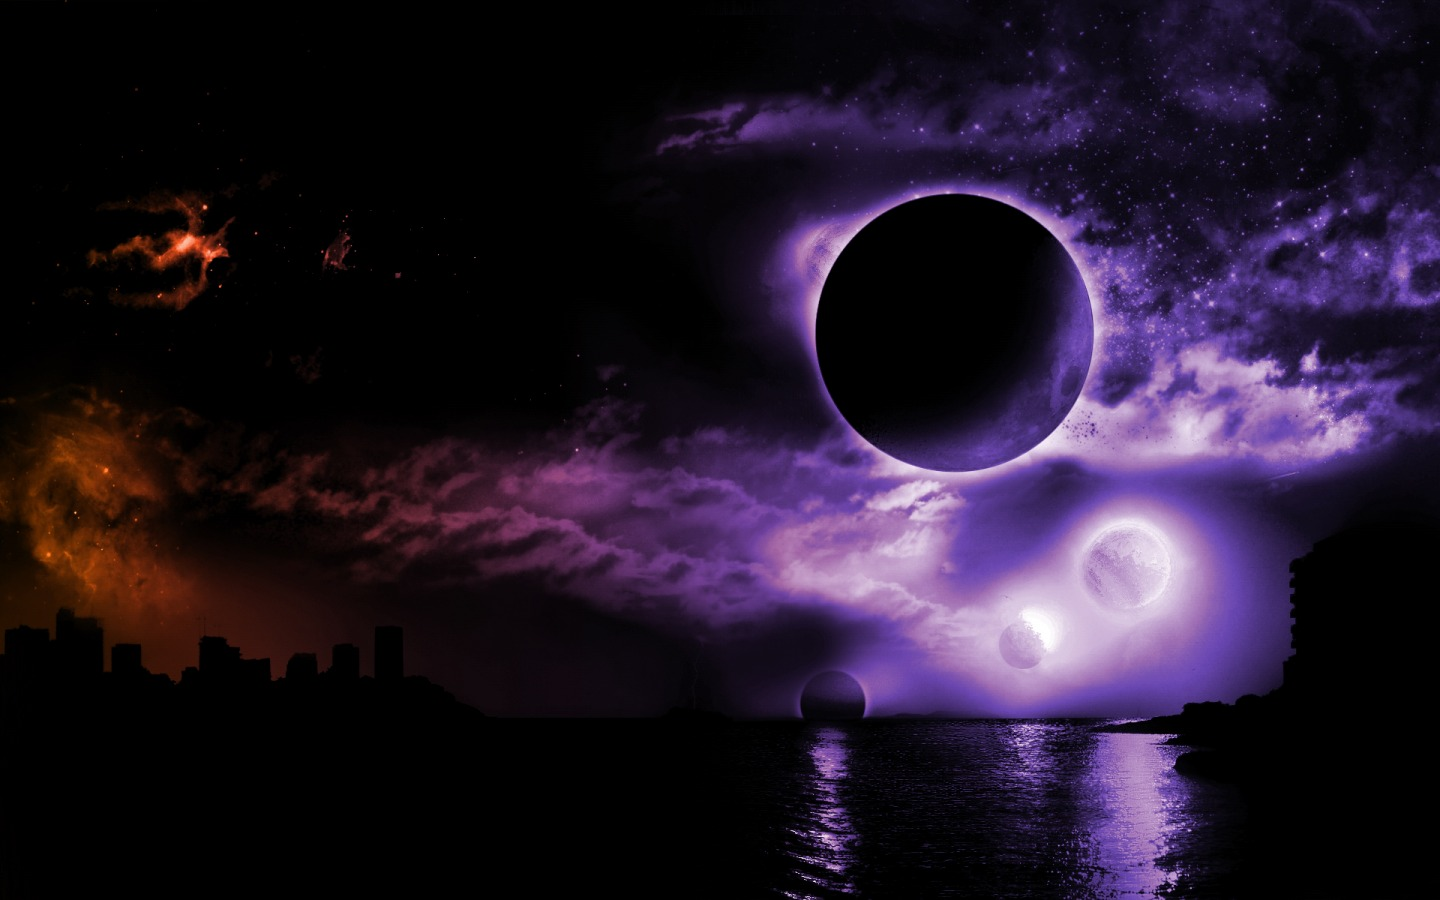 Top Wallpaper High Quality Space - dark-abstract-hd-space-high-quality-amazing-165854  Pictures_453923.jpg